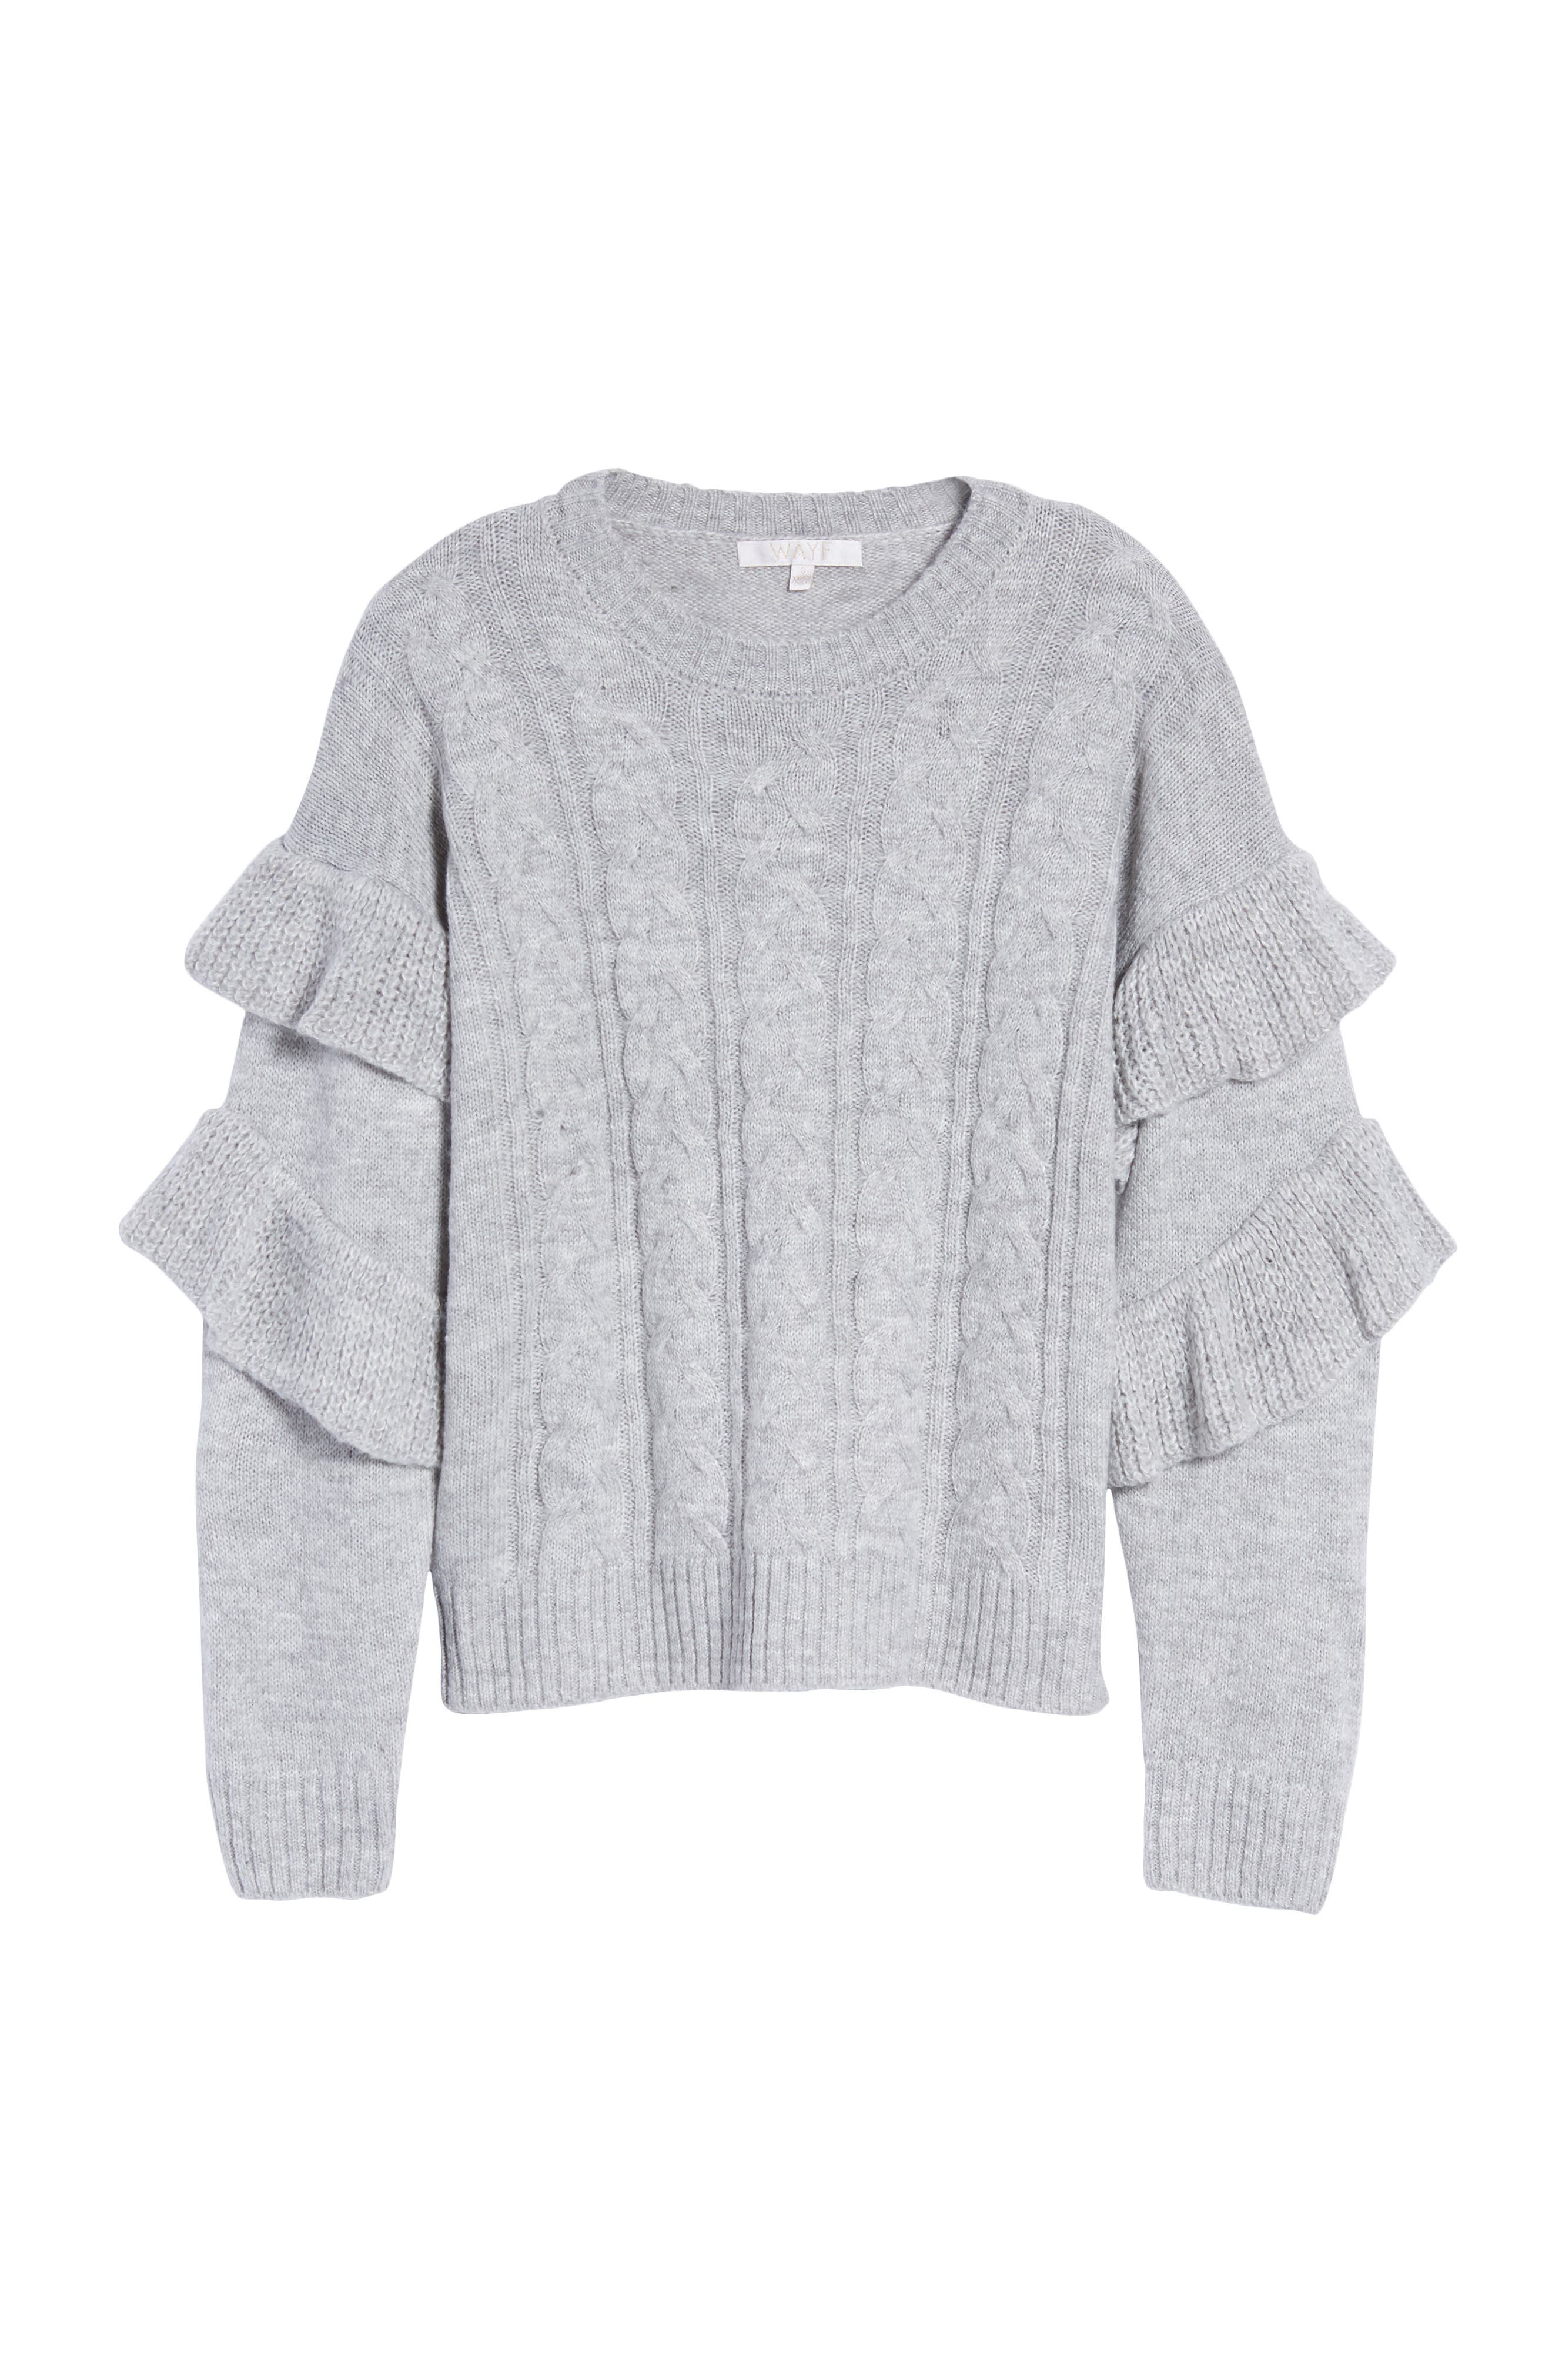 Sophie Ruffle Sleeve Sweater,                             Alternate thumbnail 6, color,